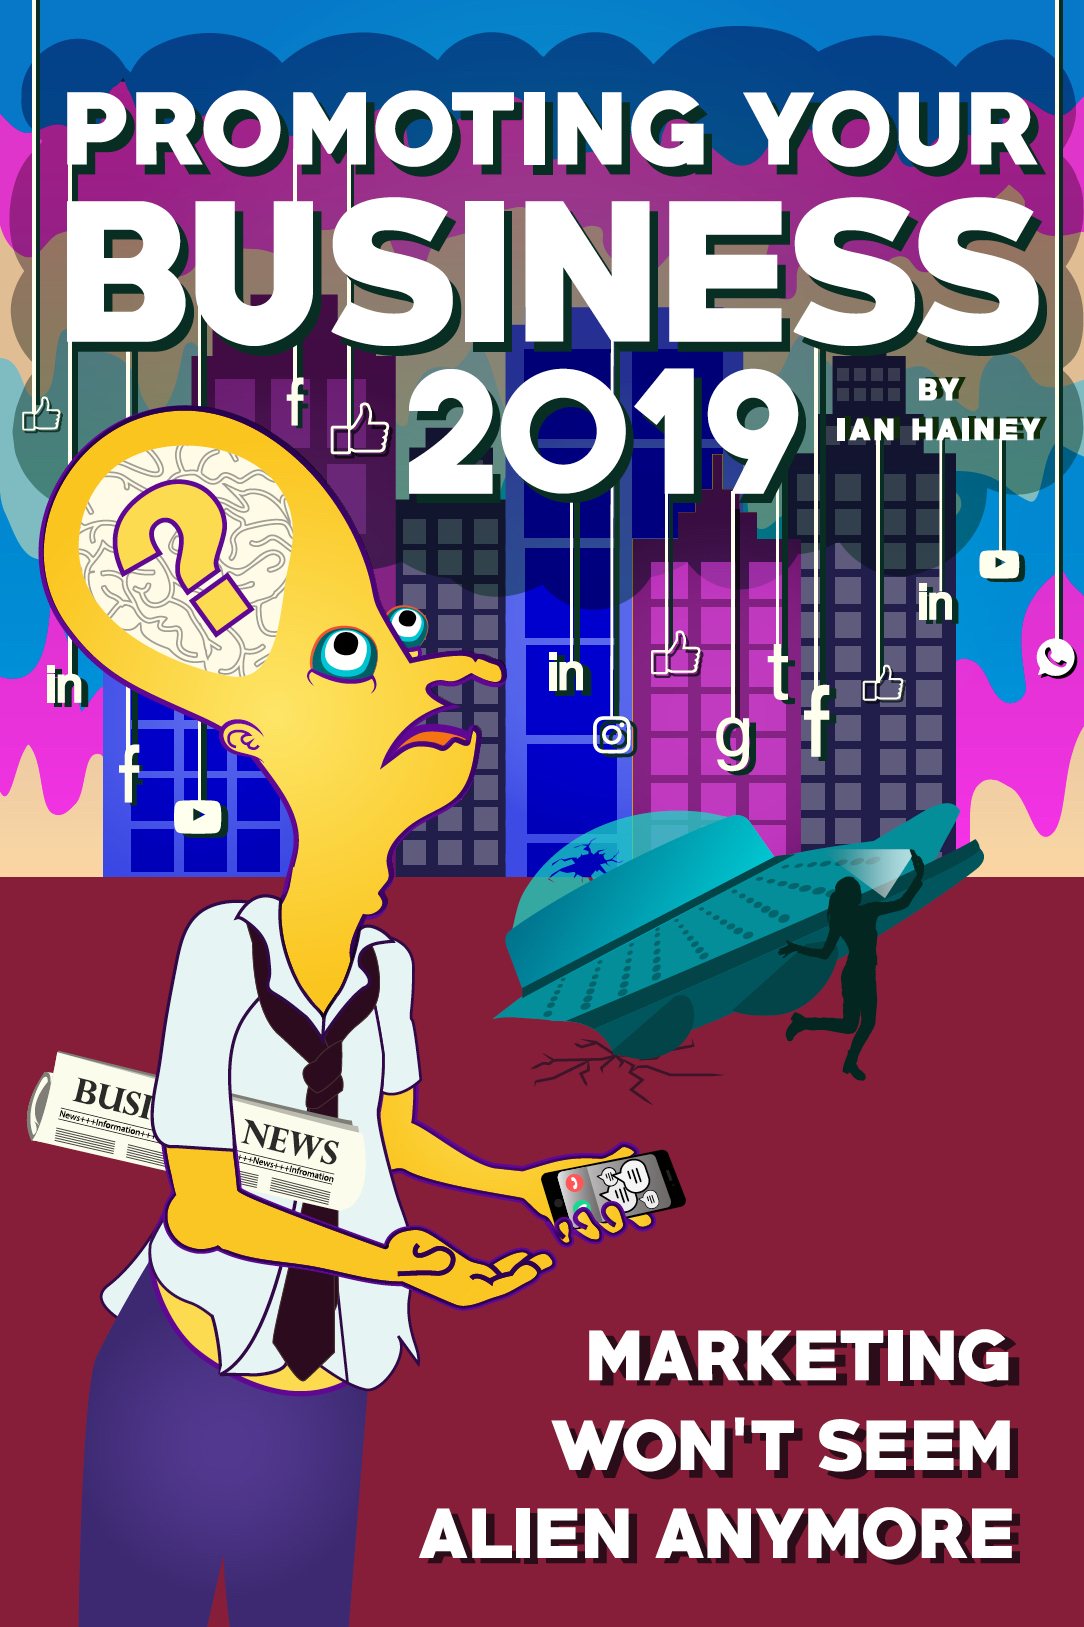 Promoting Your Business 2019